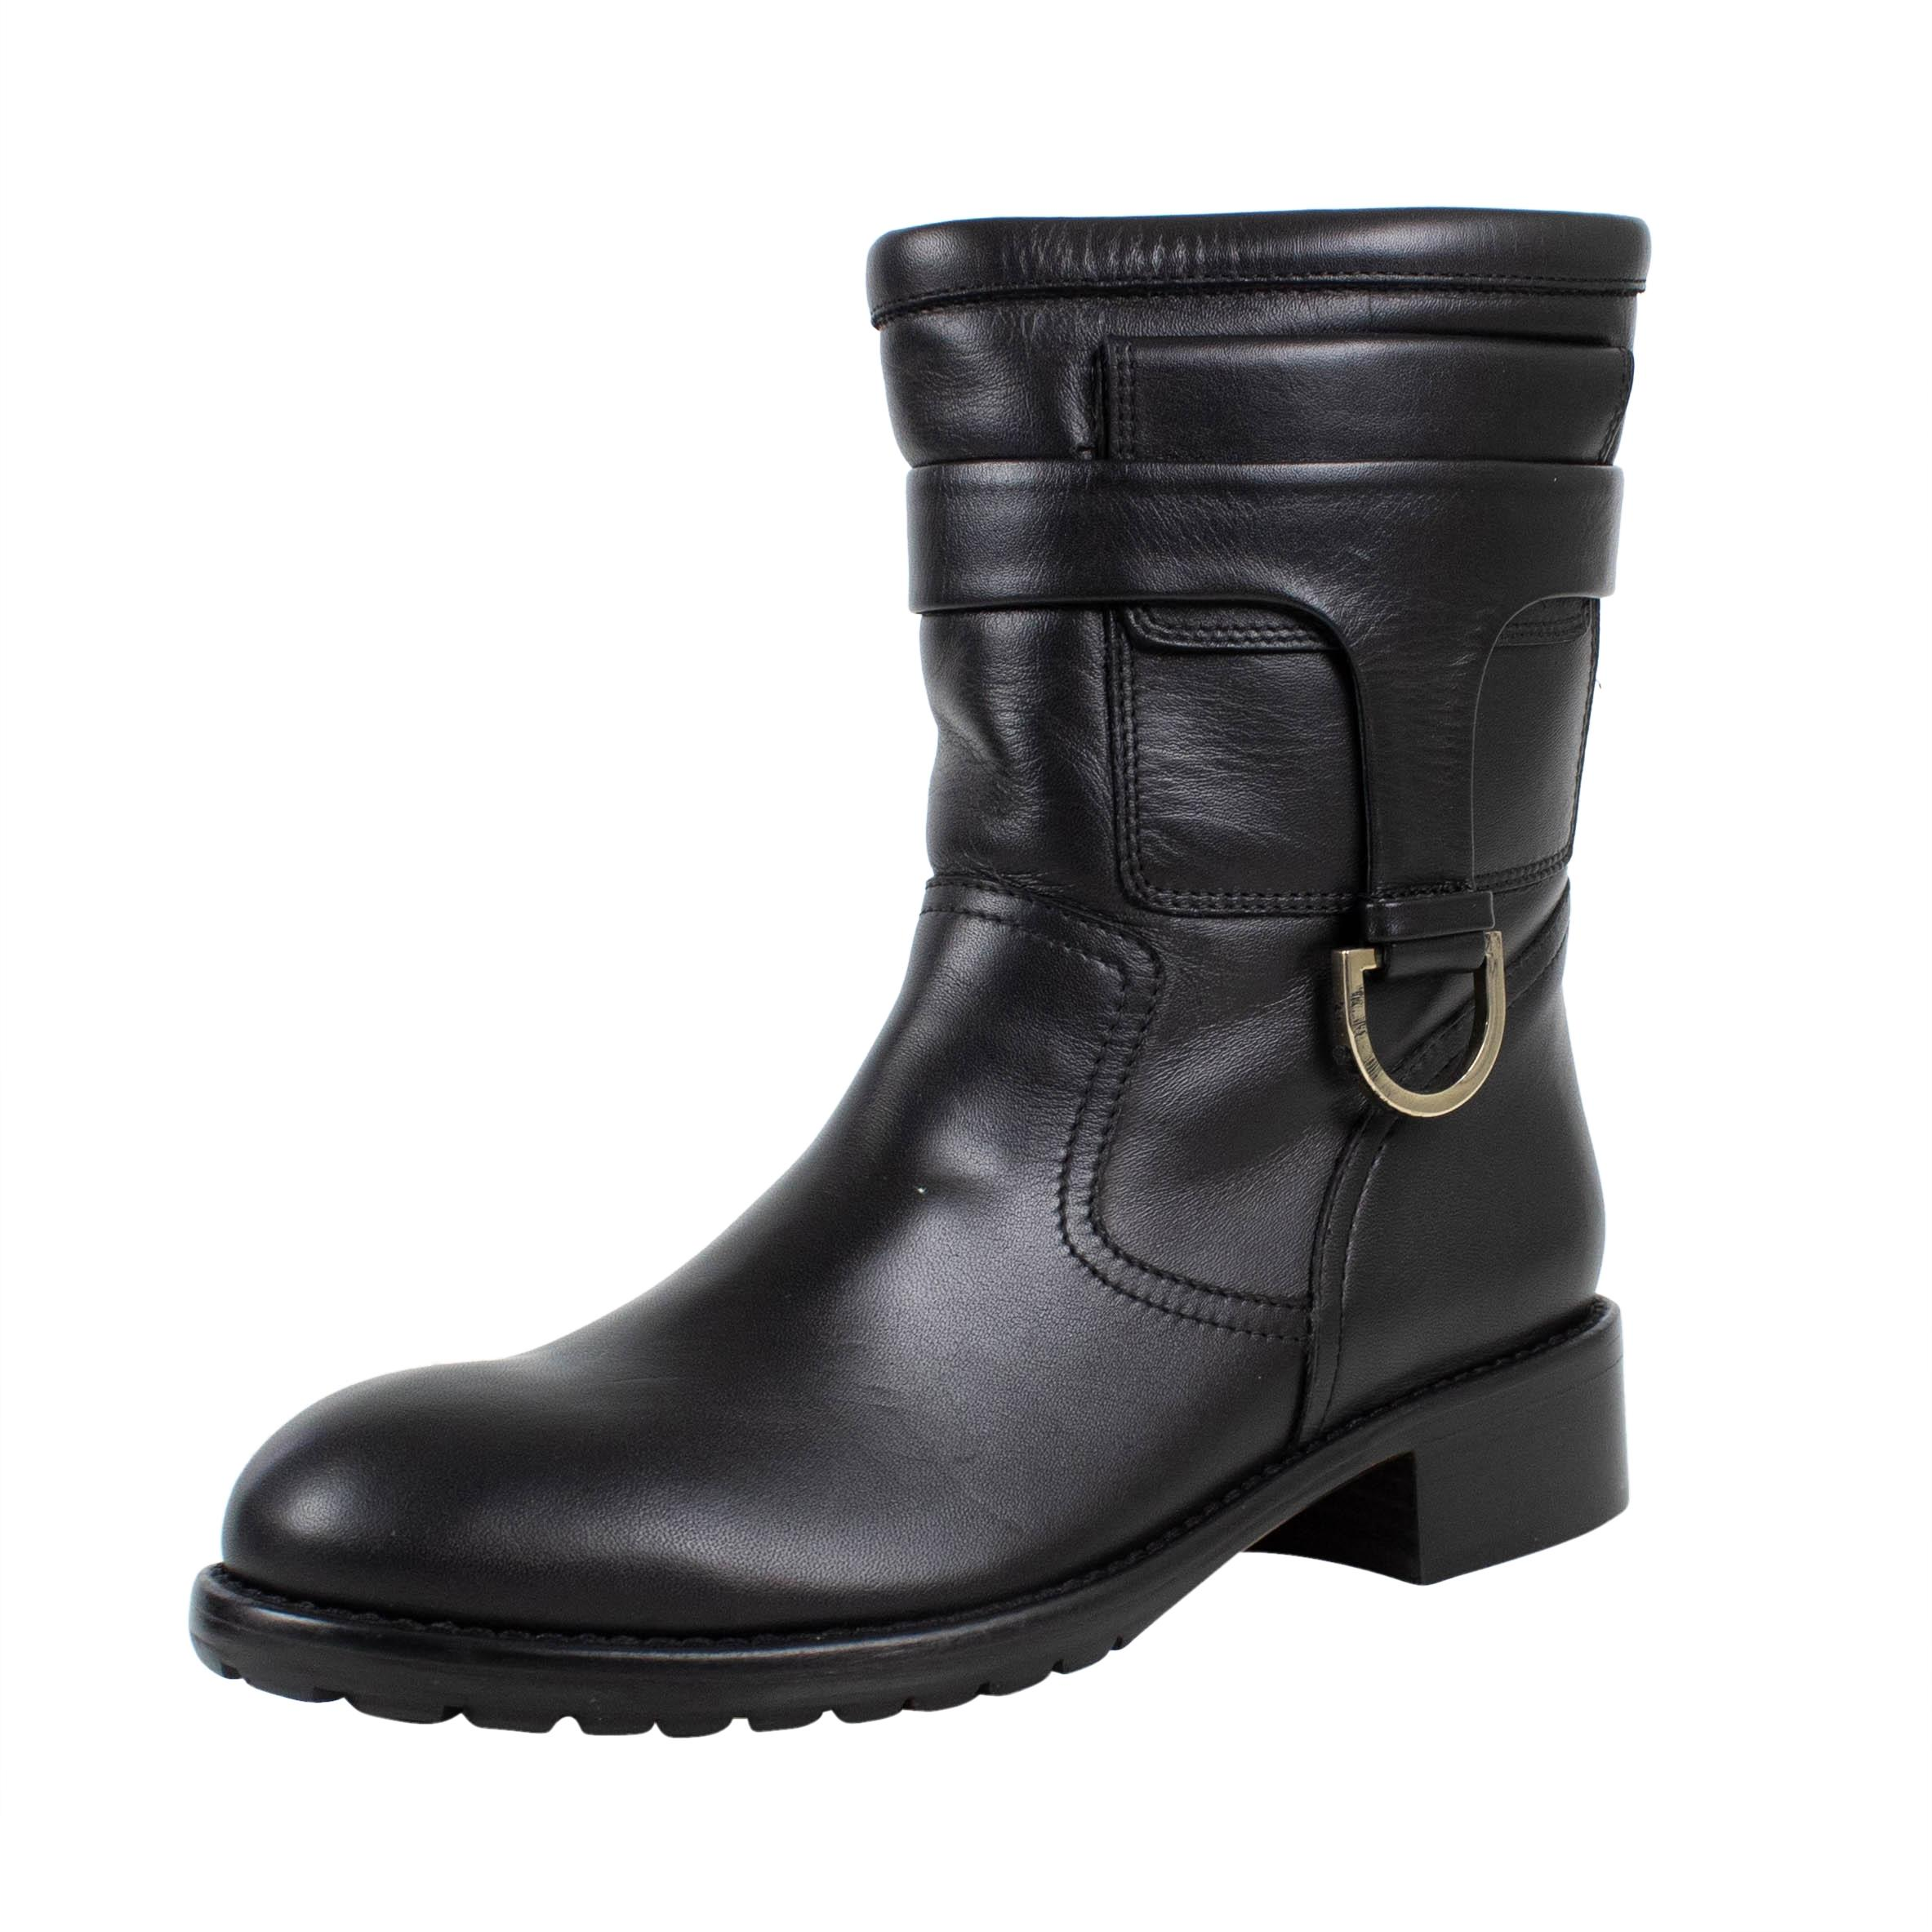 fca2d2c718e5 RED Valentino Valentino Valentino Black Mid Calf Leather Boots Booties Size  US 7 Regular (M